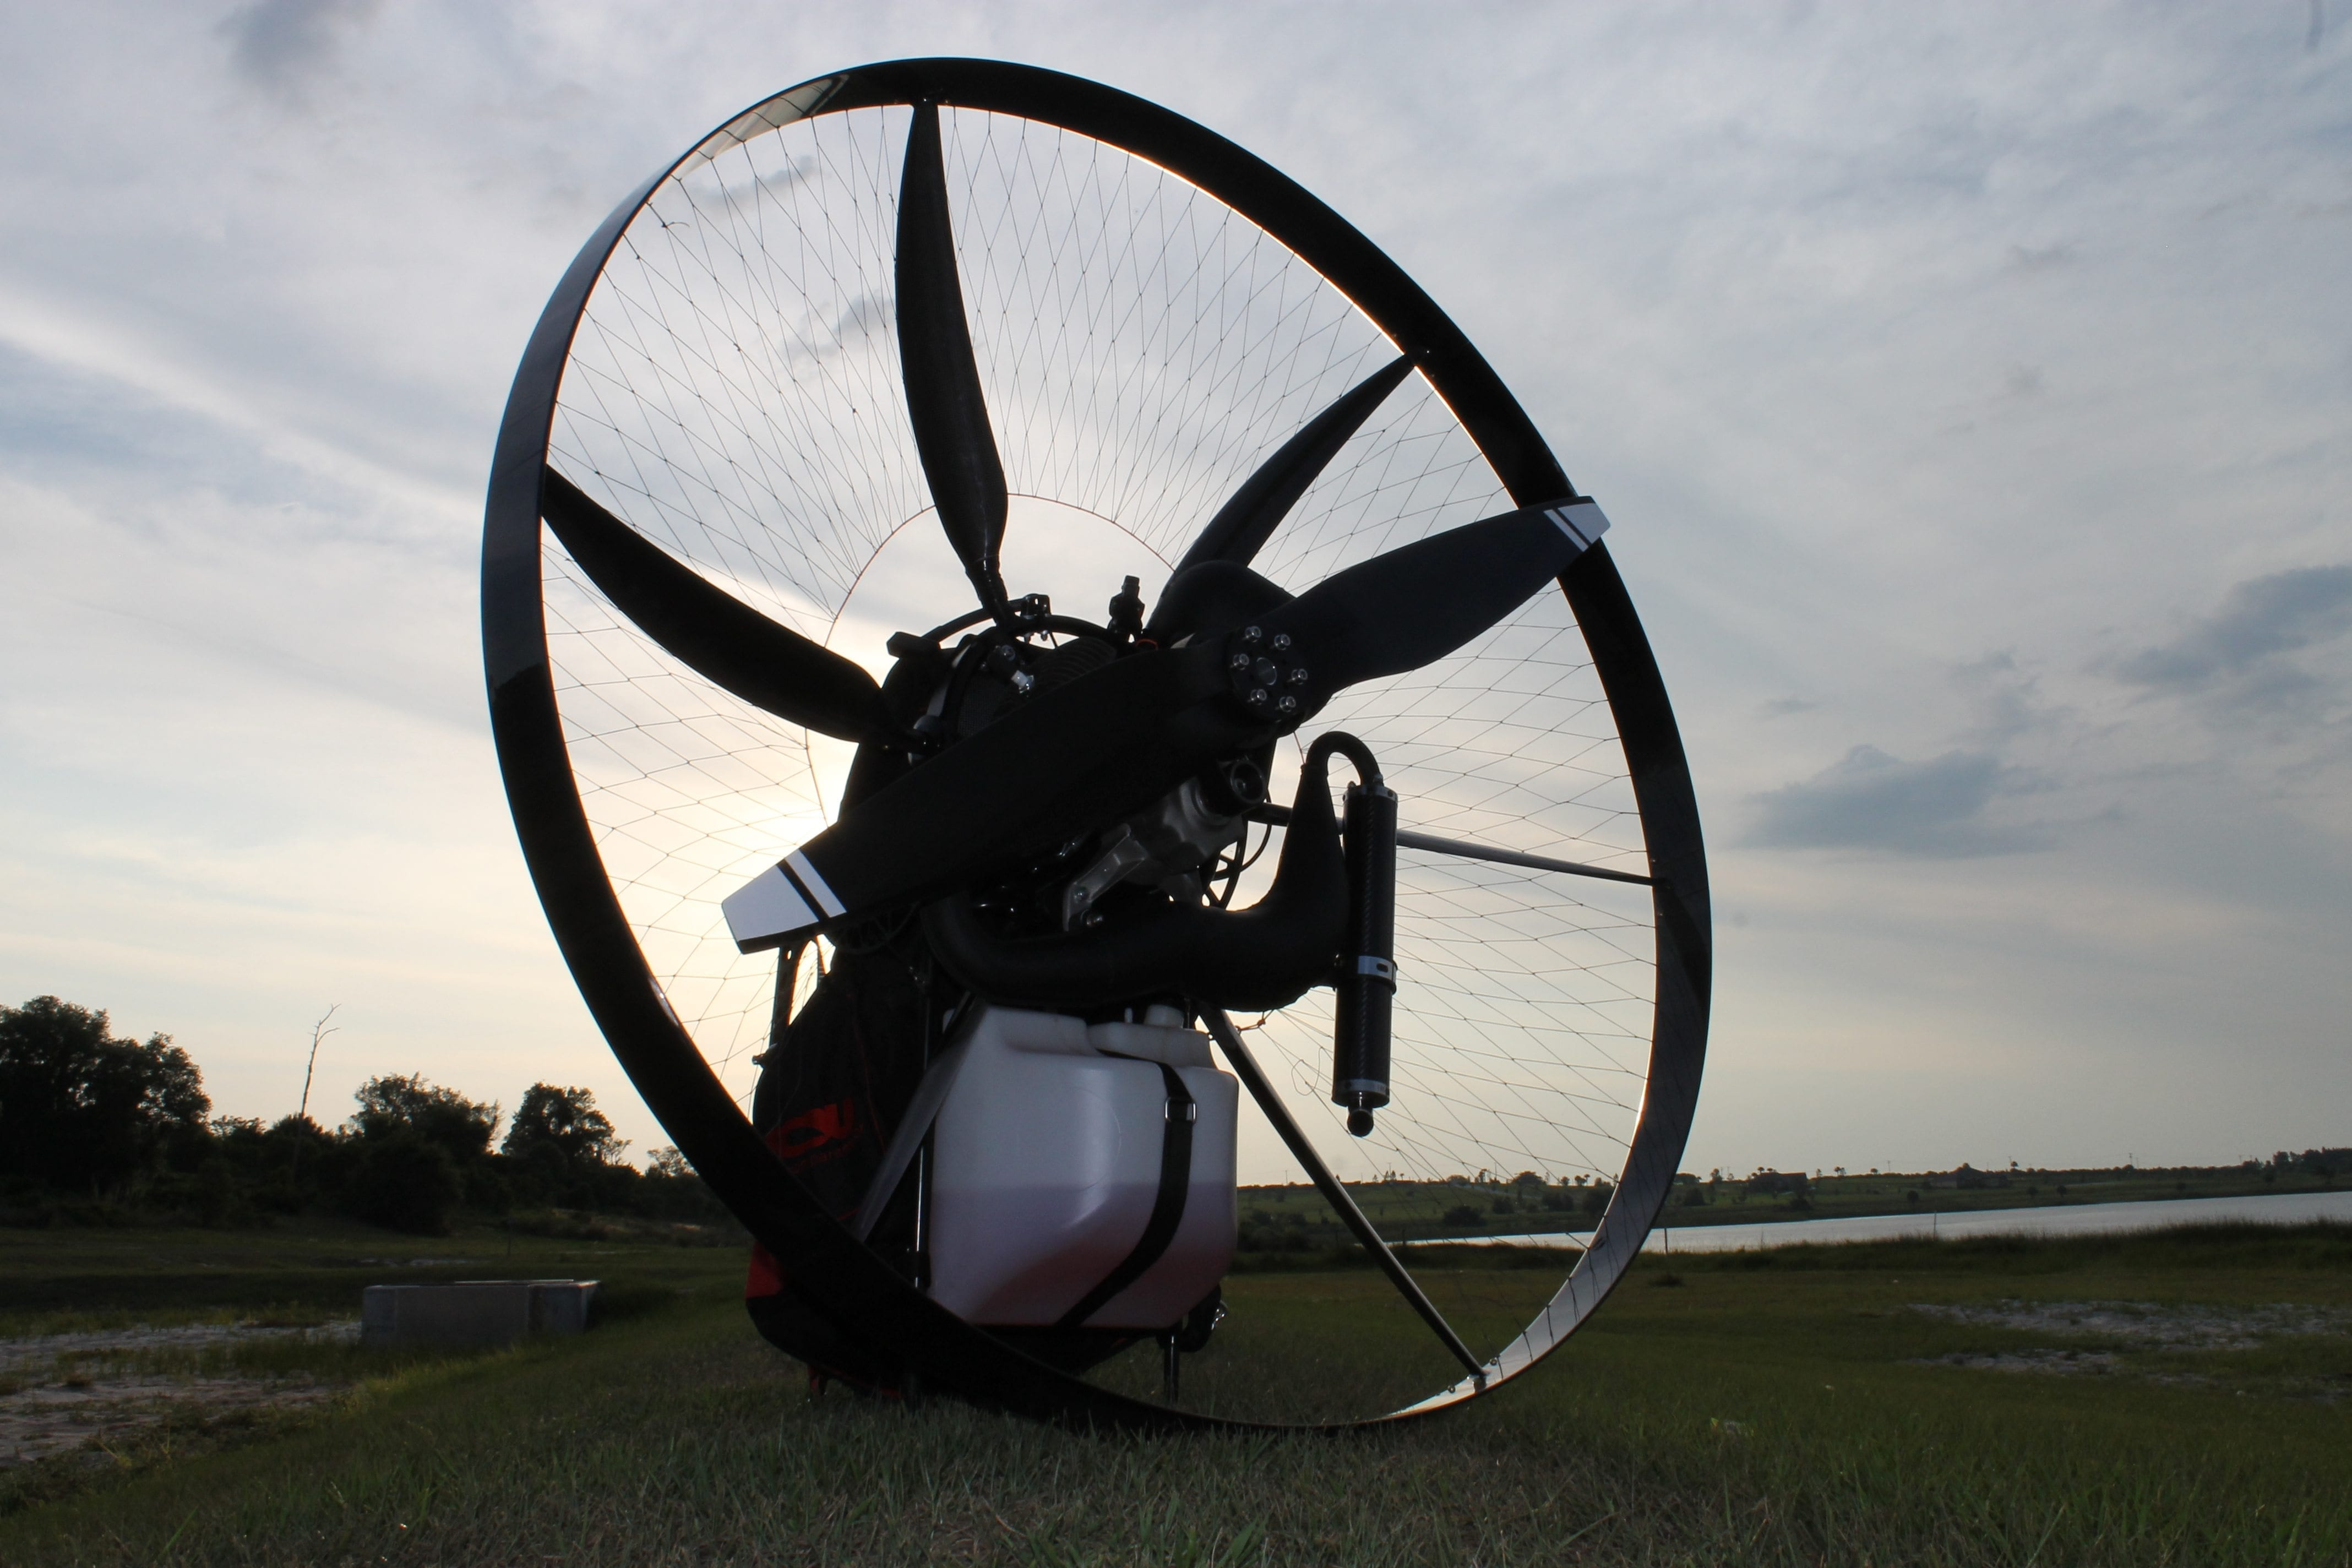 The scout carbon fiber paramotor